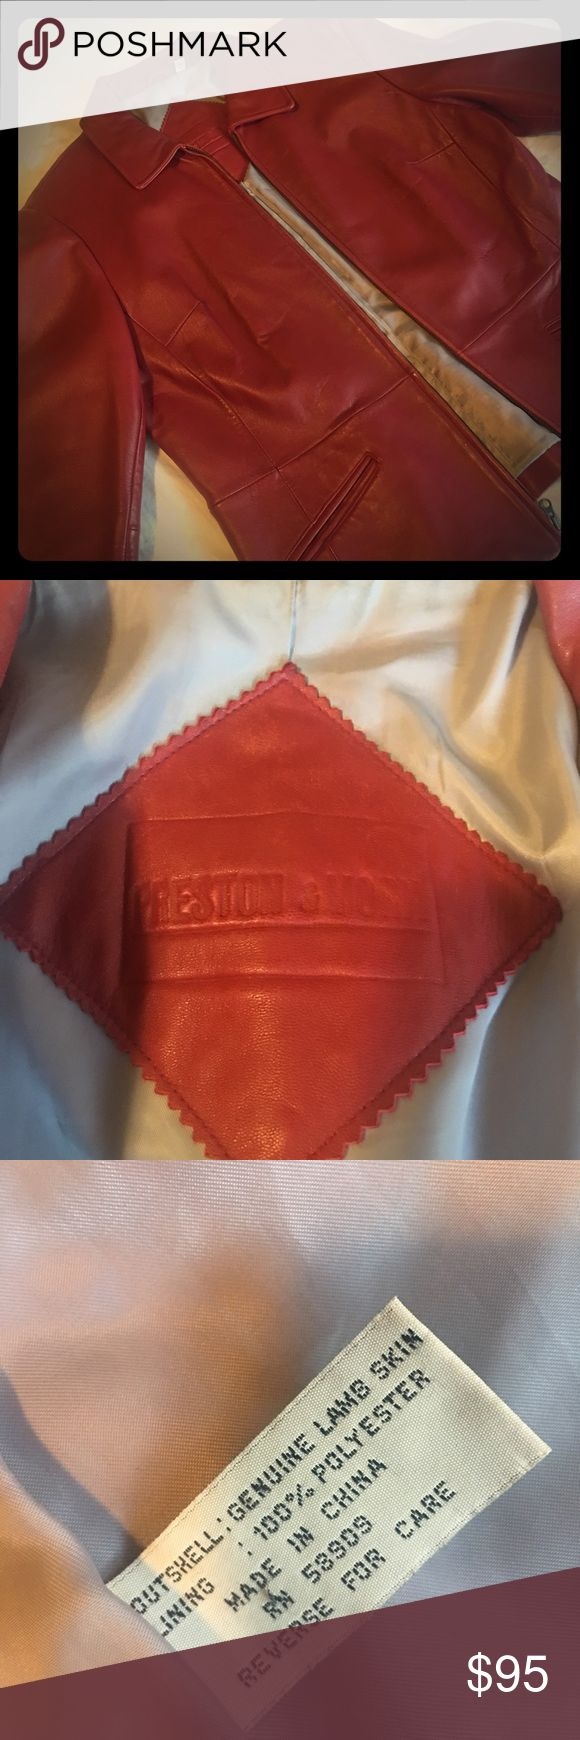 Vintage red lambskin jacket Omg soft and been in the closet for a very long time.  Worn twice only and now I don't fit it. Red lamb skin like leather. 100% authentic. Woman's fit Preston & York Jackets & Coats Blazers